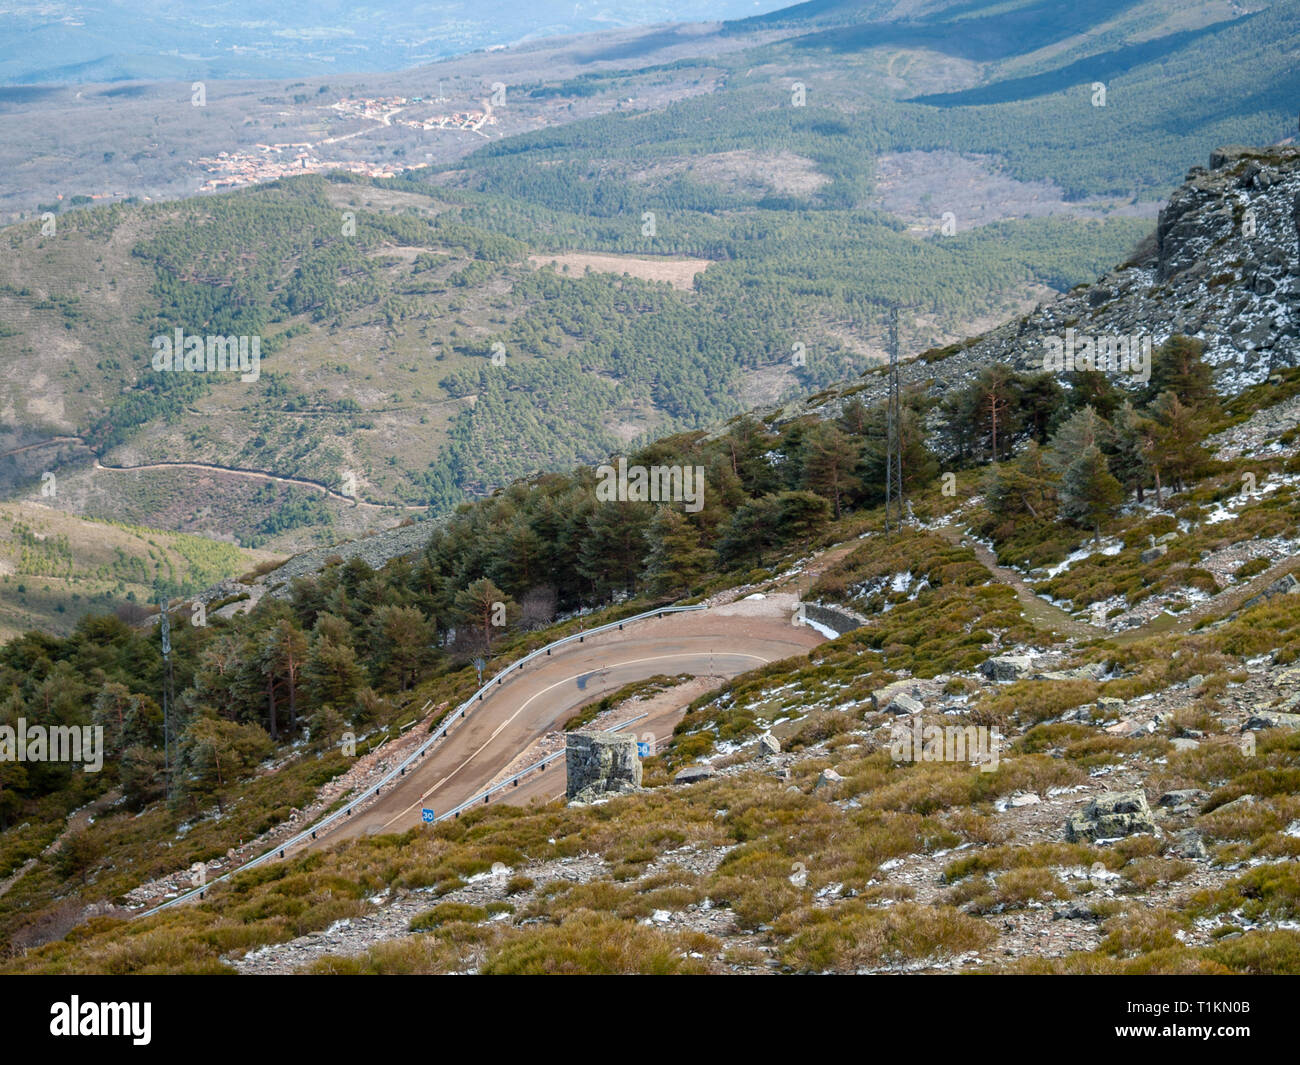 Very closed curve on a dangerous high mountain road from an aerial view on Pena de Francia, La Alberca (Salamanca) - Stock Image